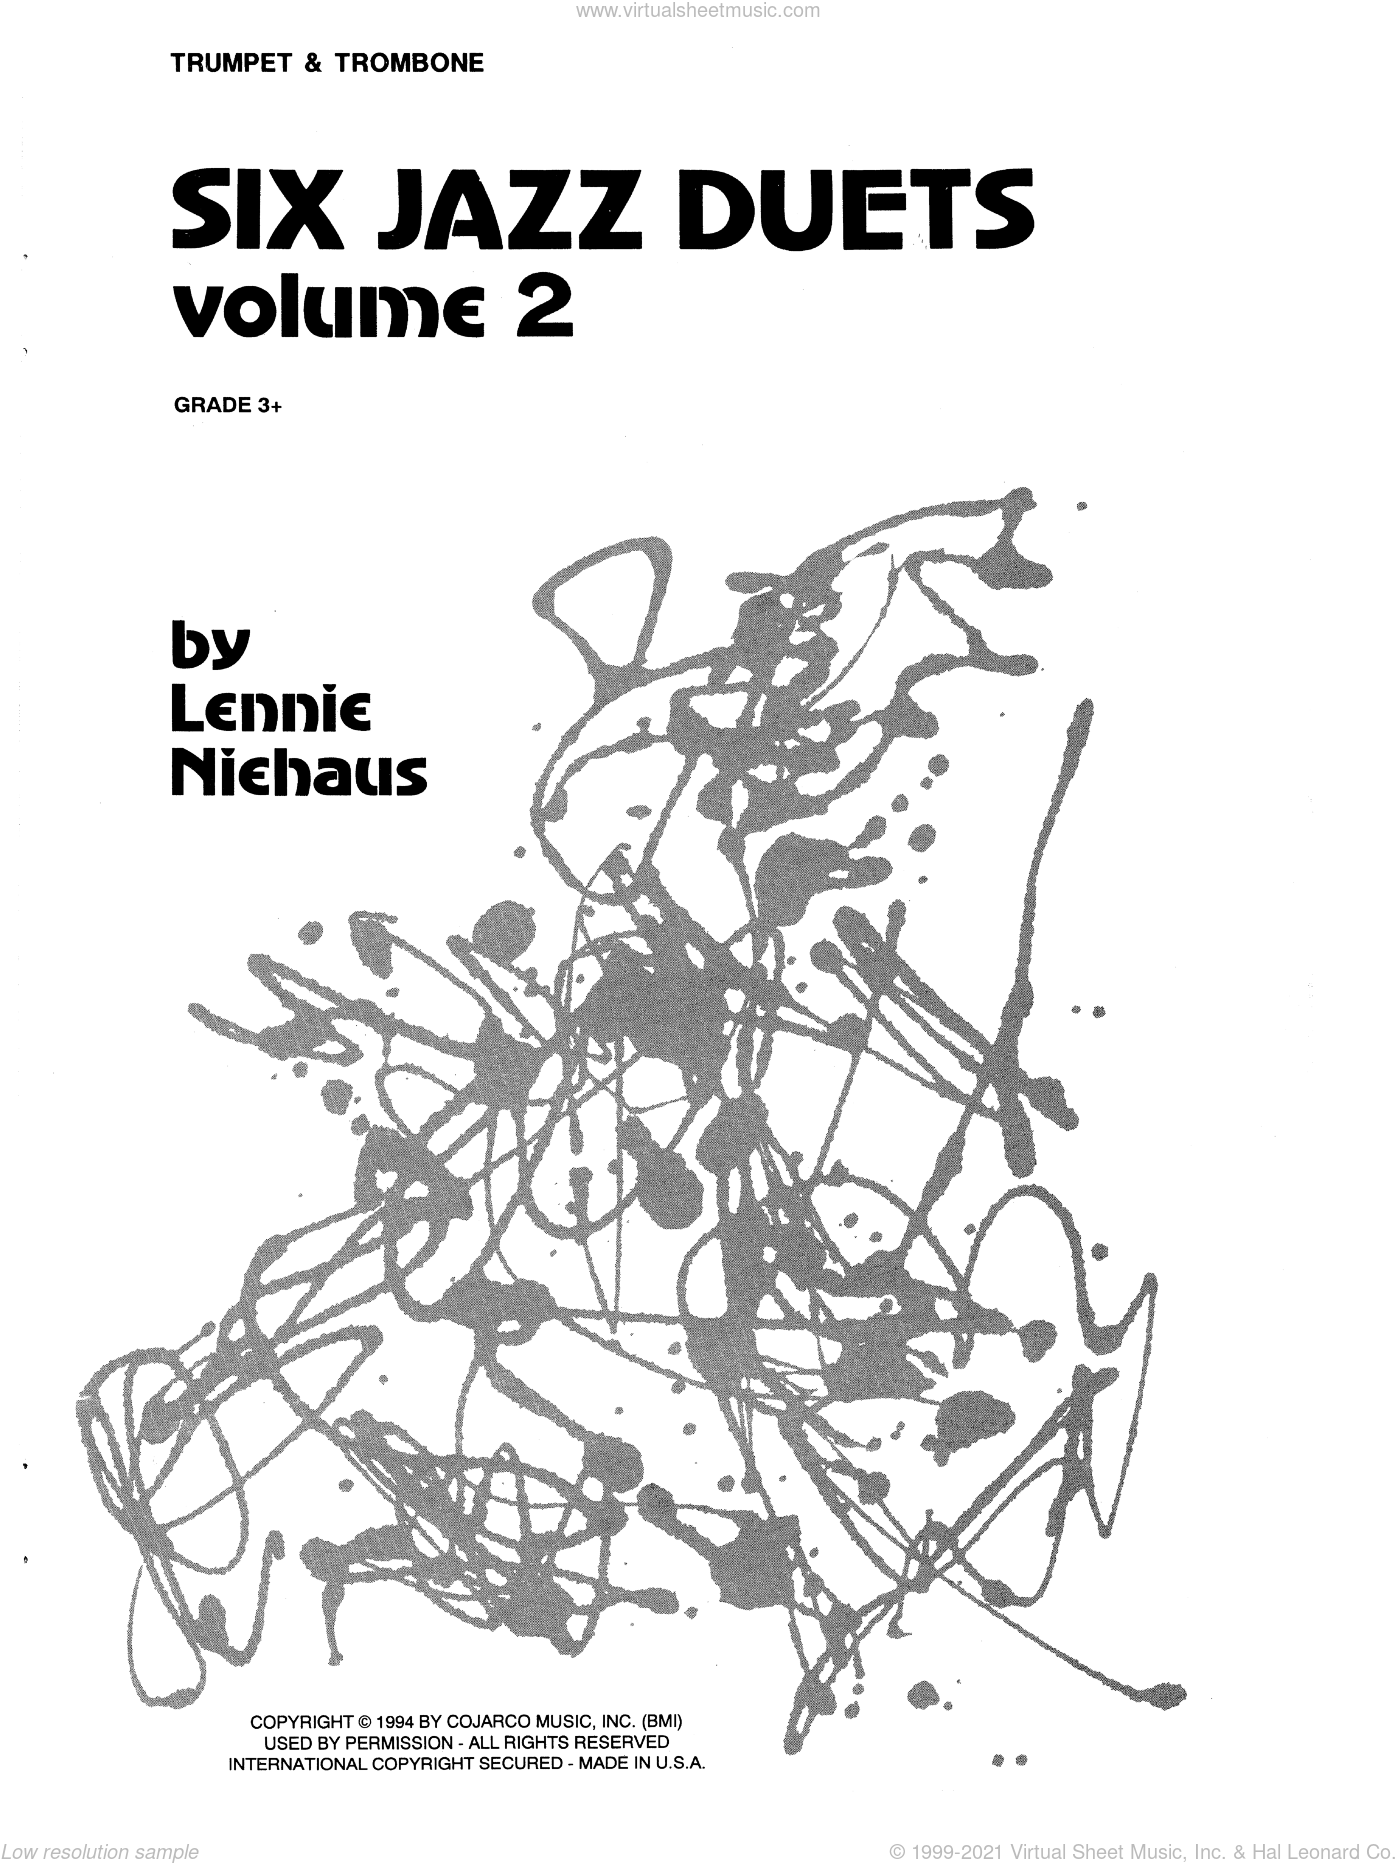 Six Jazz Duets, Volume 2 sheet music for trumpet and trombone by Lennie Niehaus. Score Image Preview.